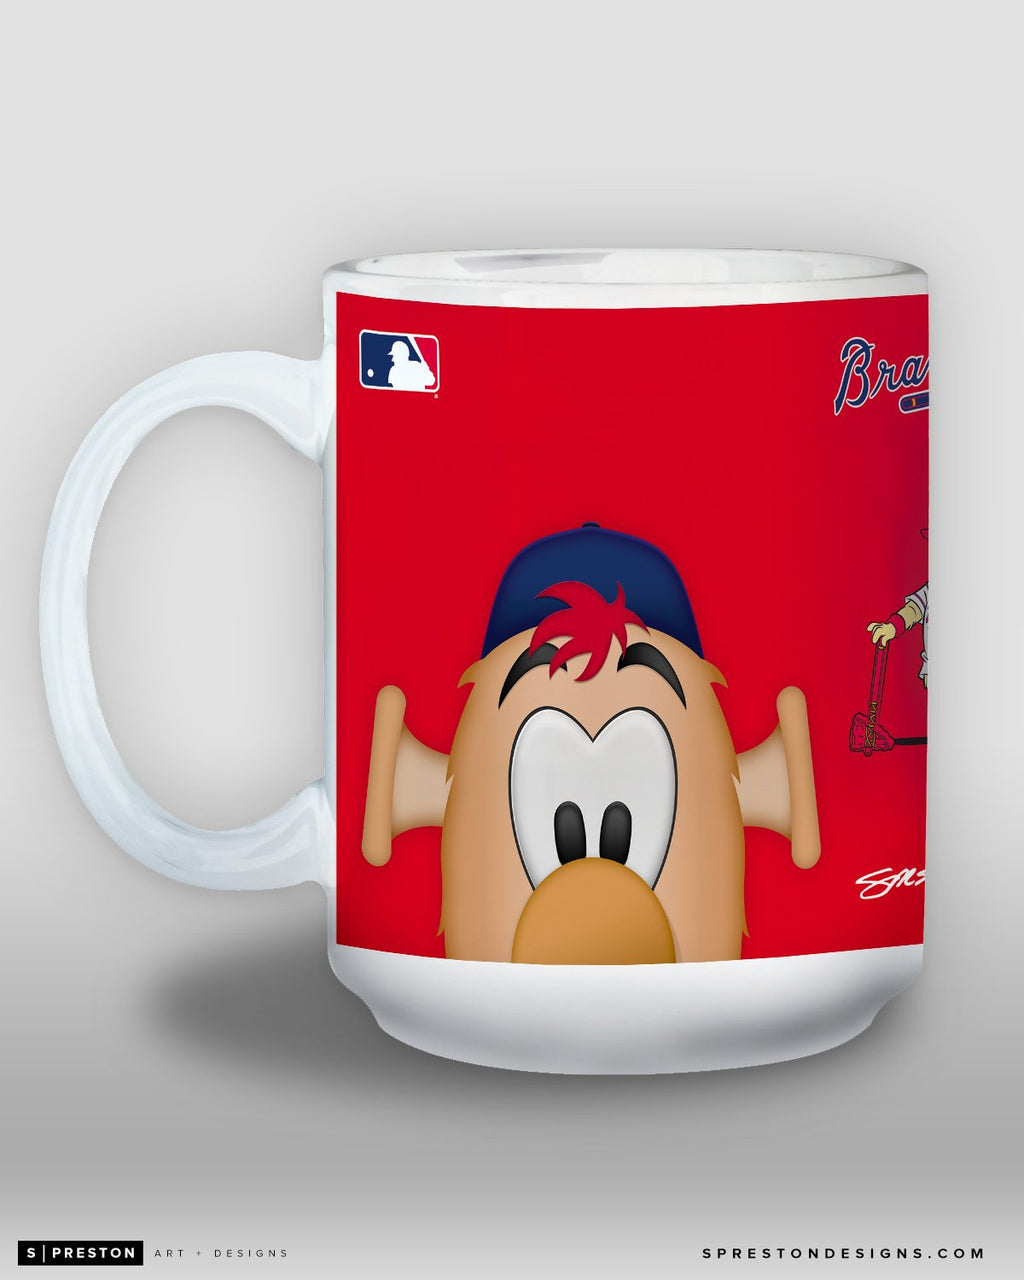 Minimalist Blooper Coffee Mug - MLB Licensed - Atlanta Braves Mascot